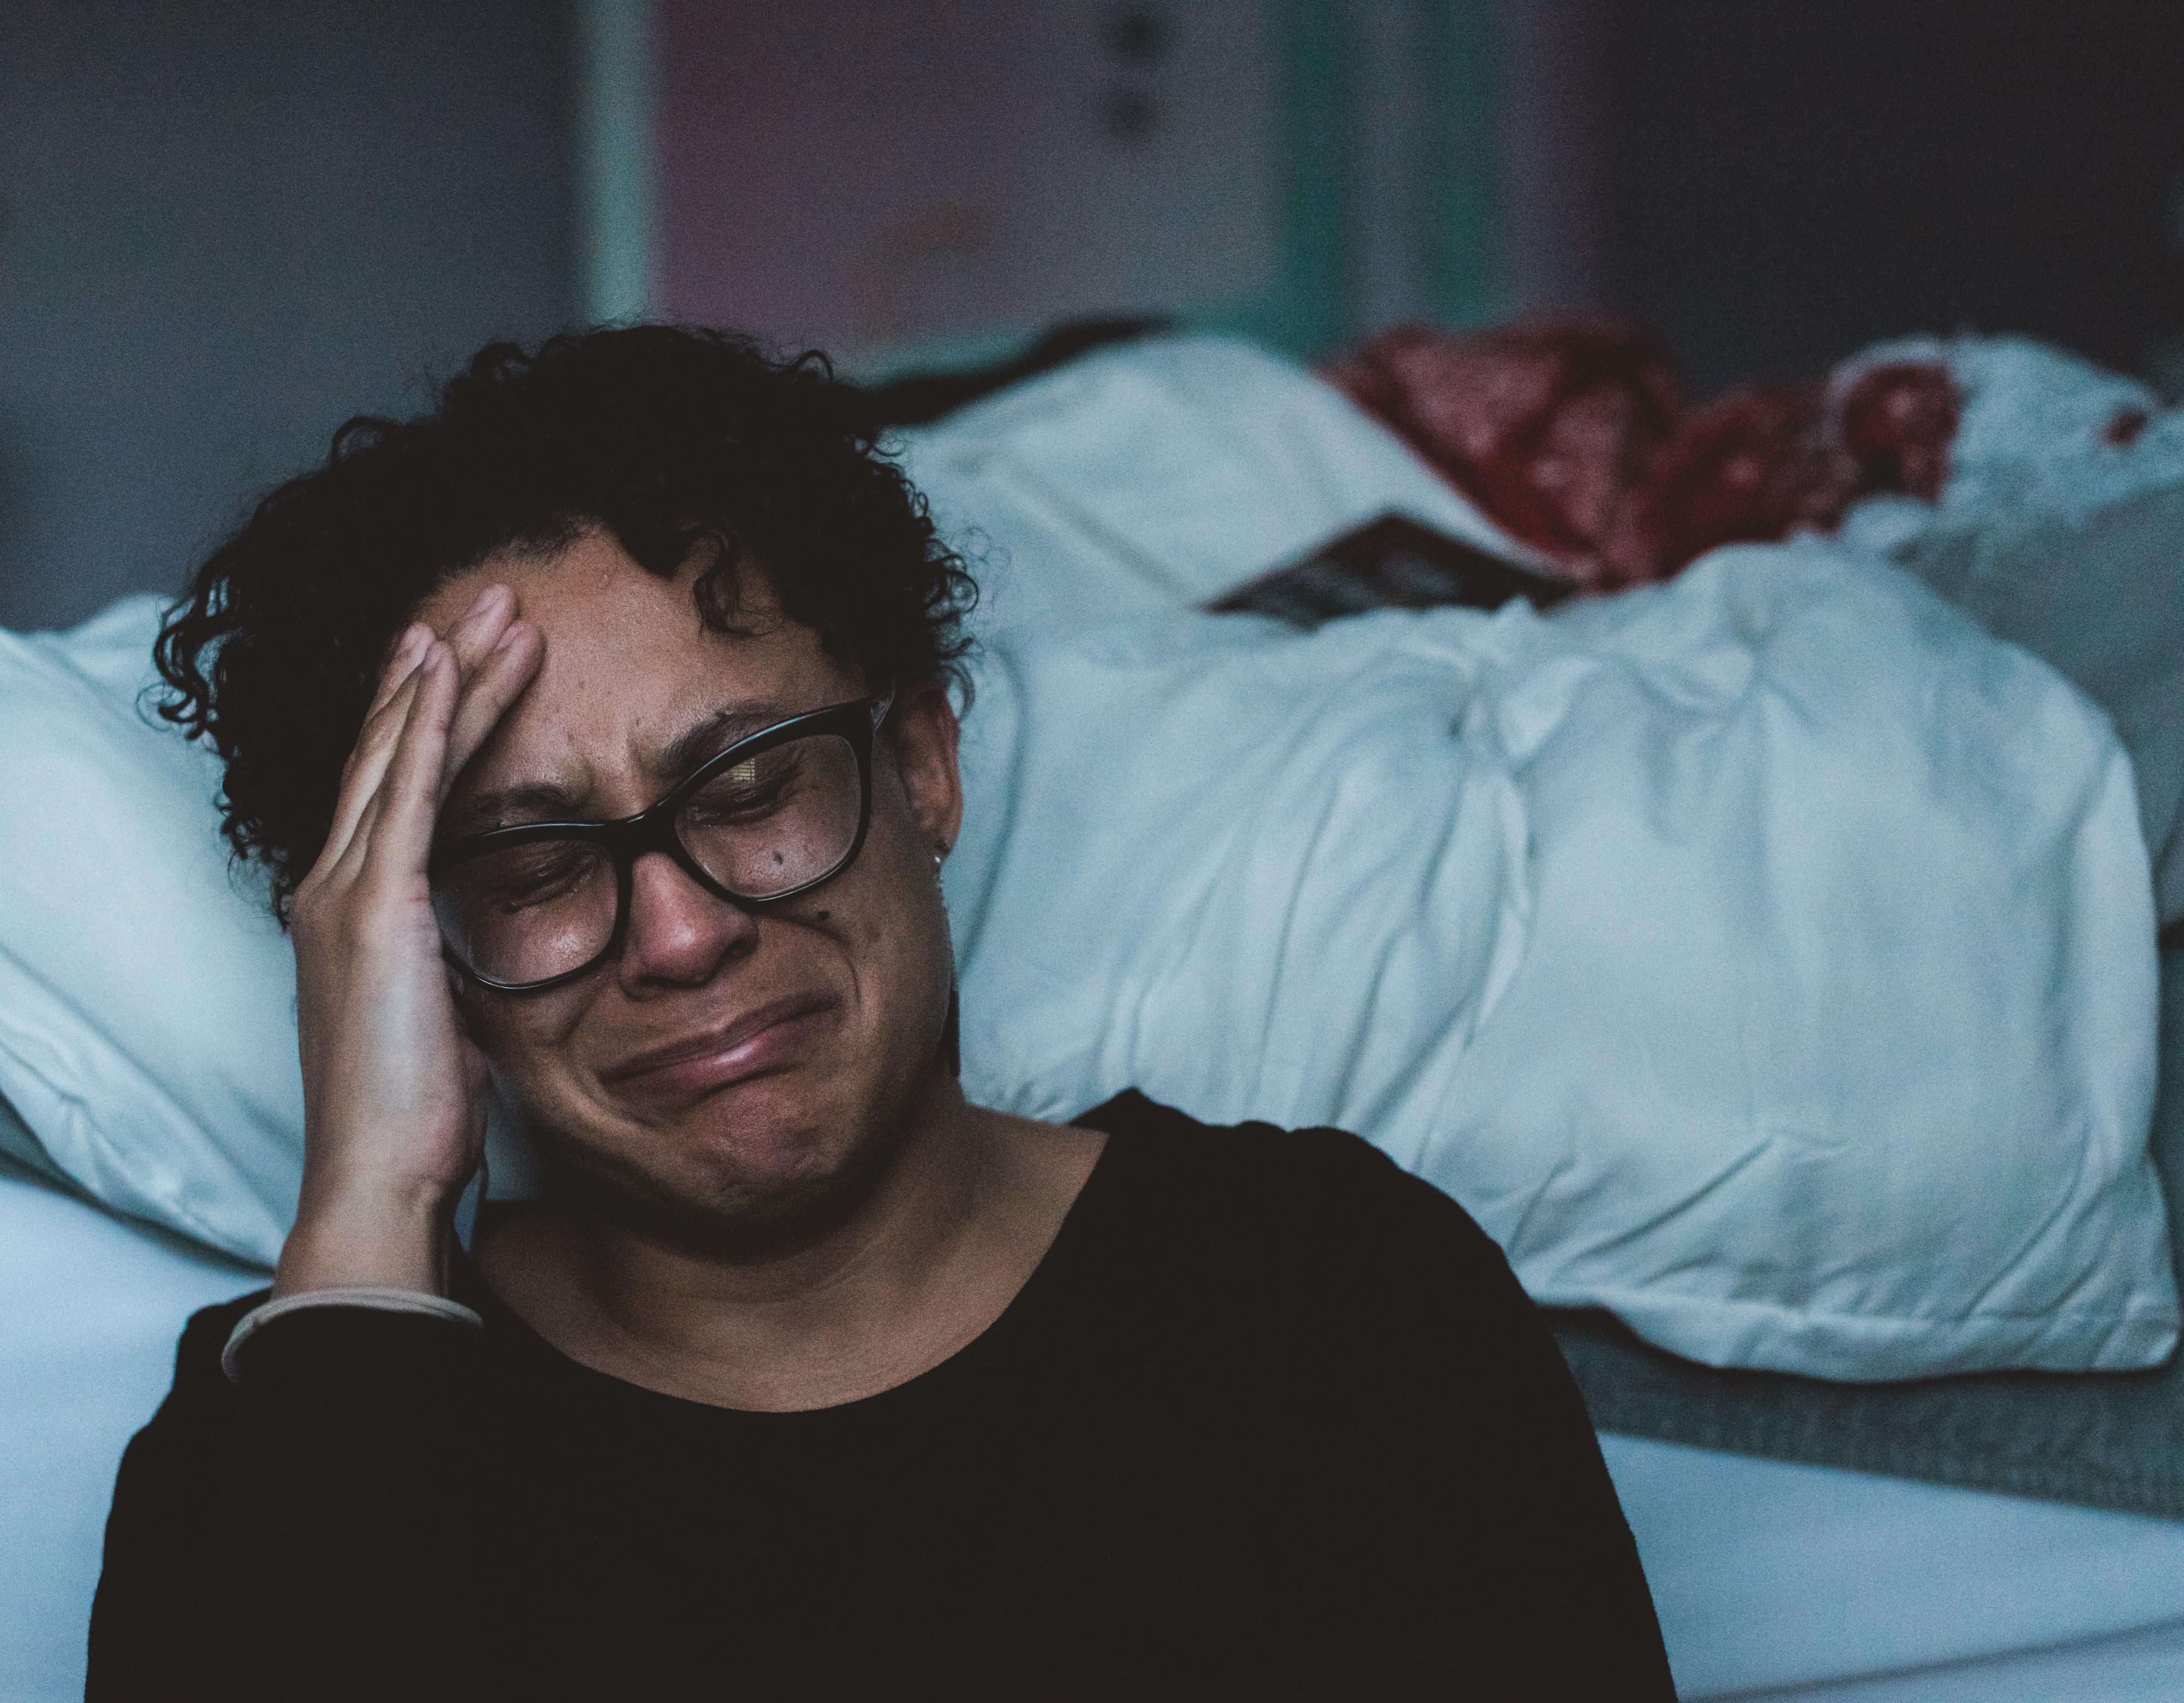 A woman sitting at bedside crying